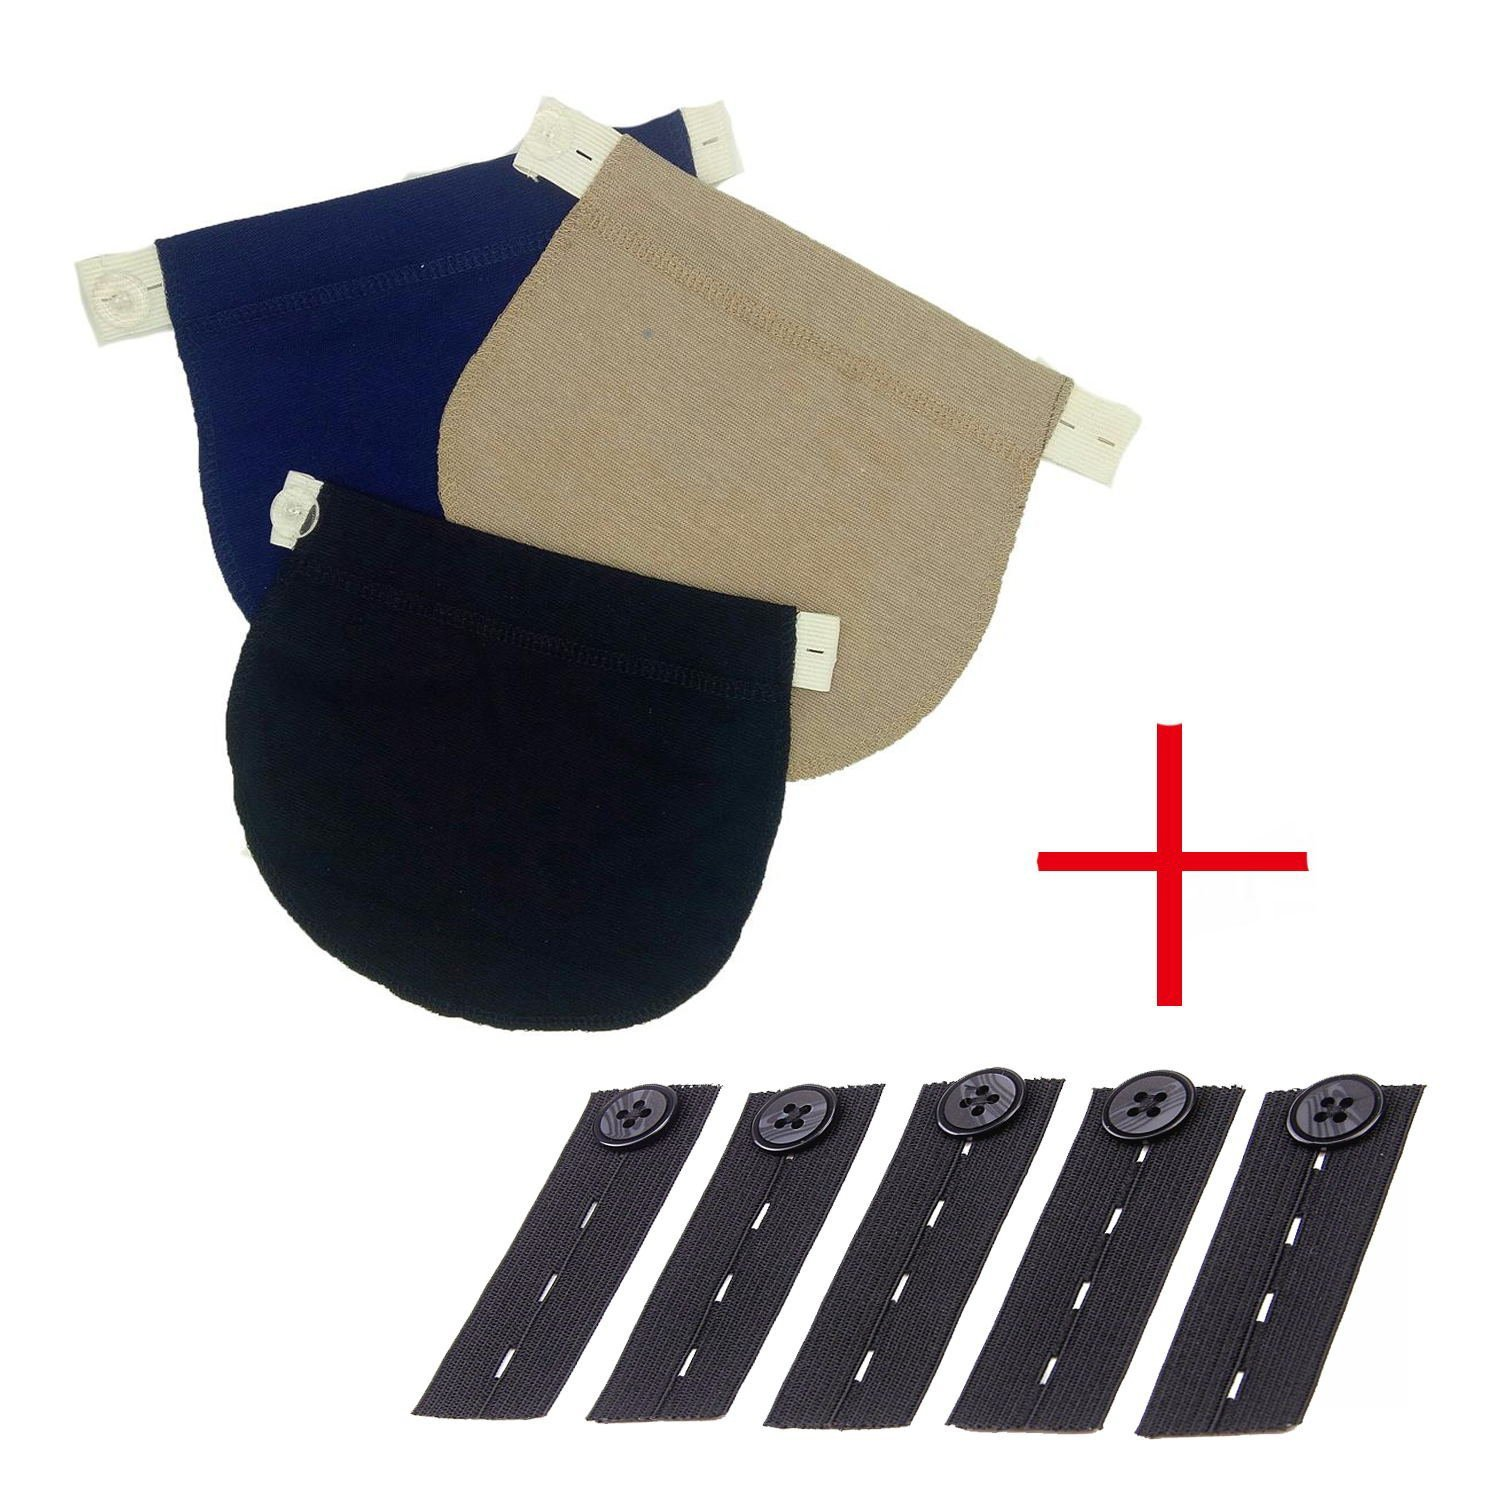 Maternity Belly Band | Pregnancy Belt, Waistband Extender Mothers Maternity Wear The Best Gift for a Pregnant Woman